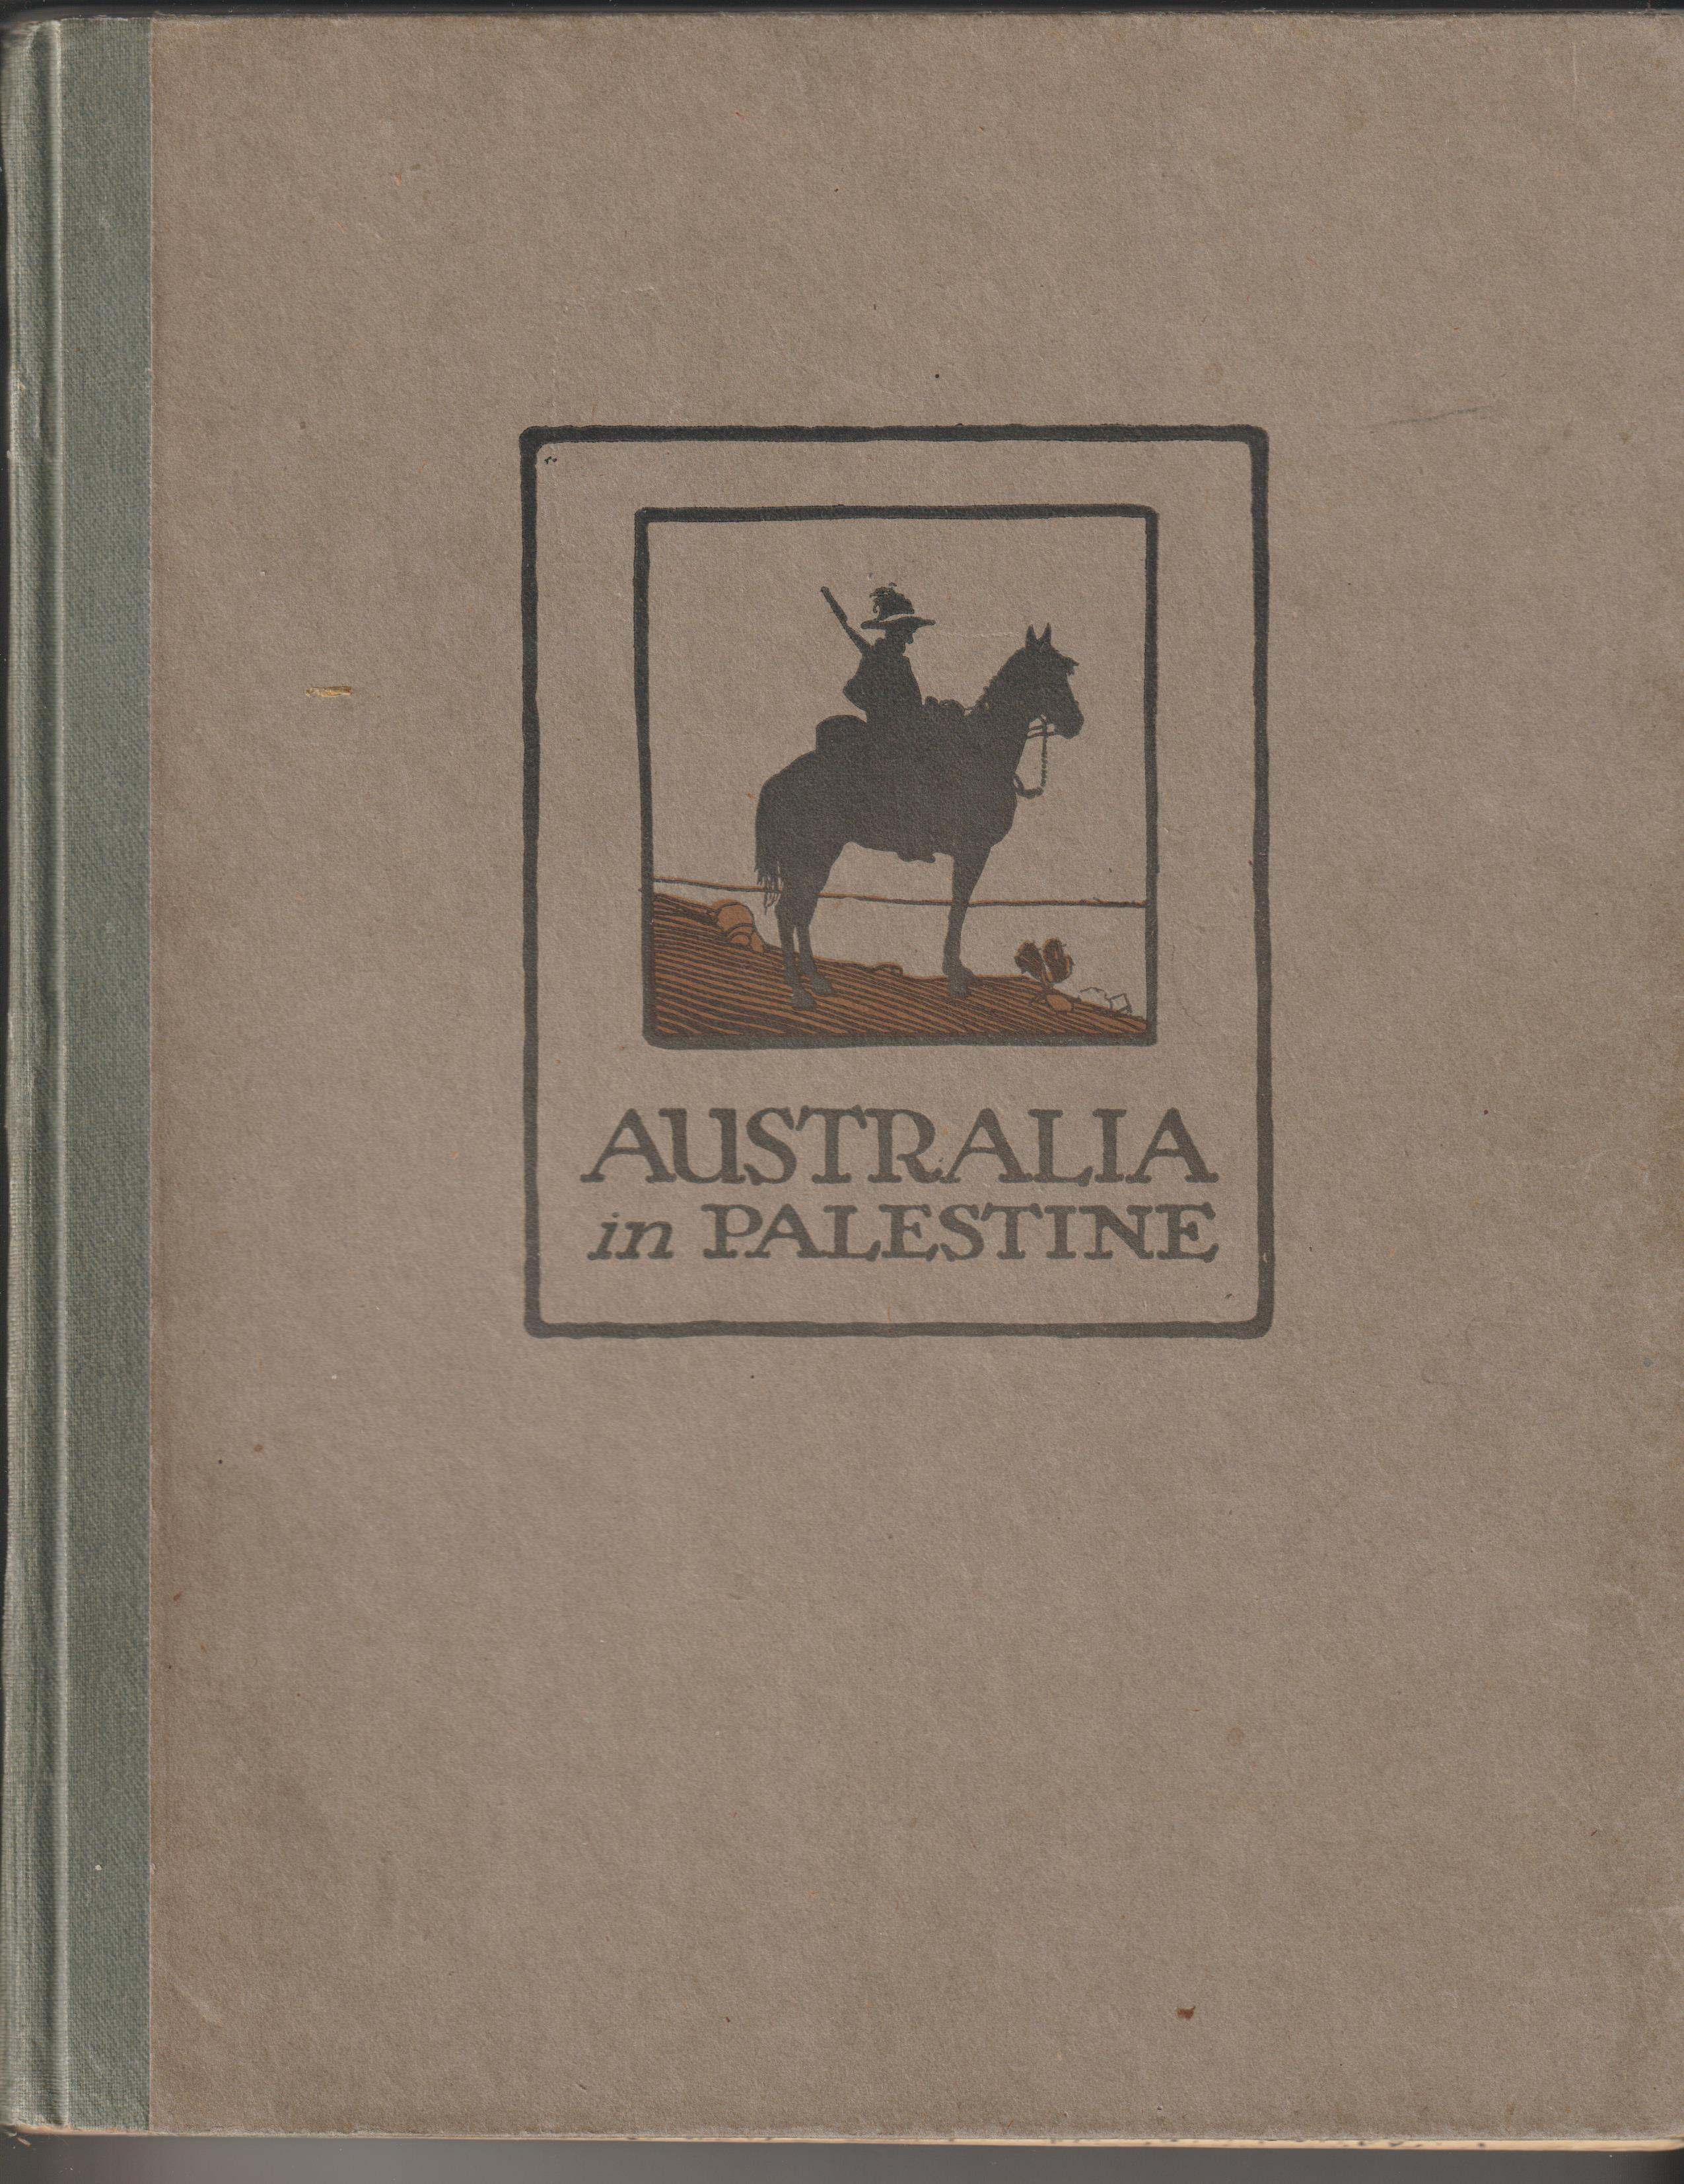 AUSTRALIA IN PALESTINE. ORIGINAL 1919 FIRST EDITION PUBLISHED BY ANGUS & ROBERTSON